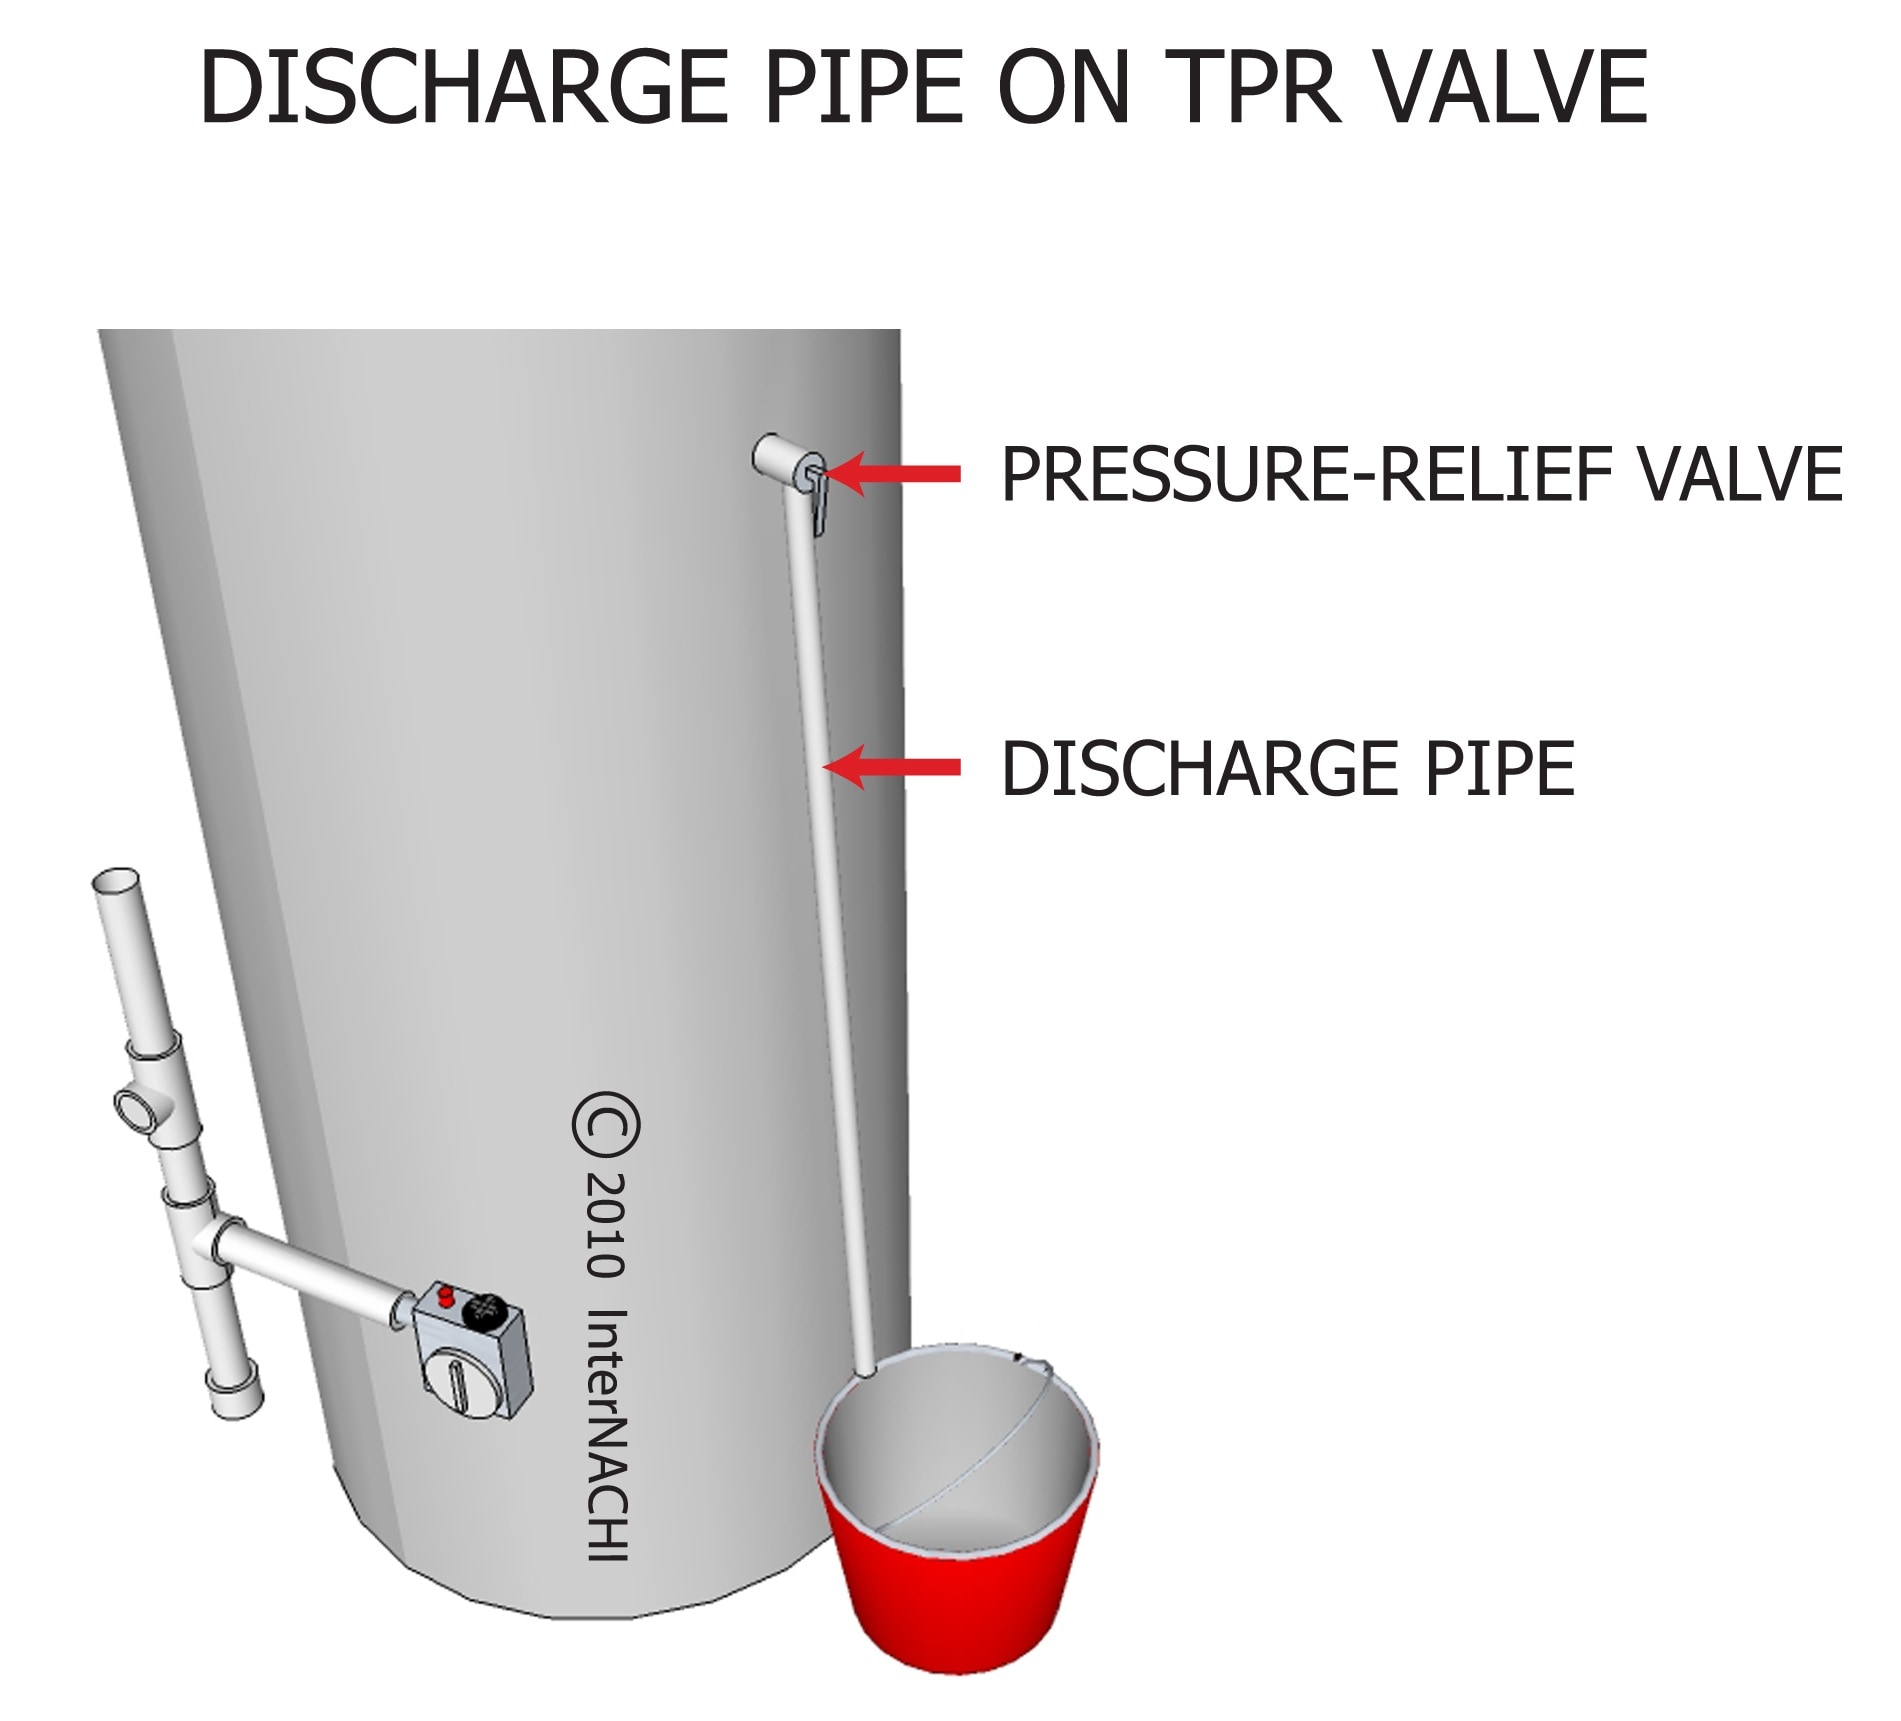 Discharge pipe on TPR valve.